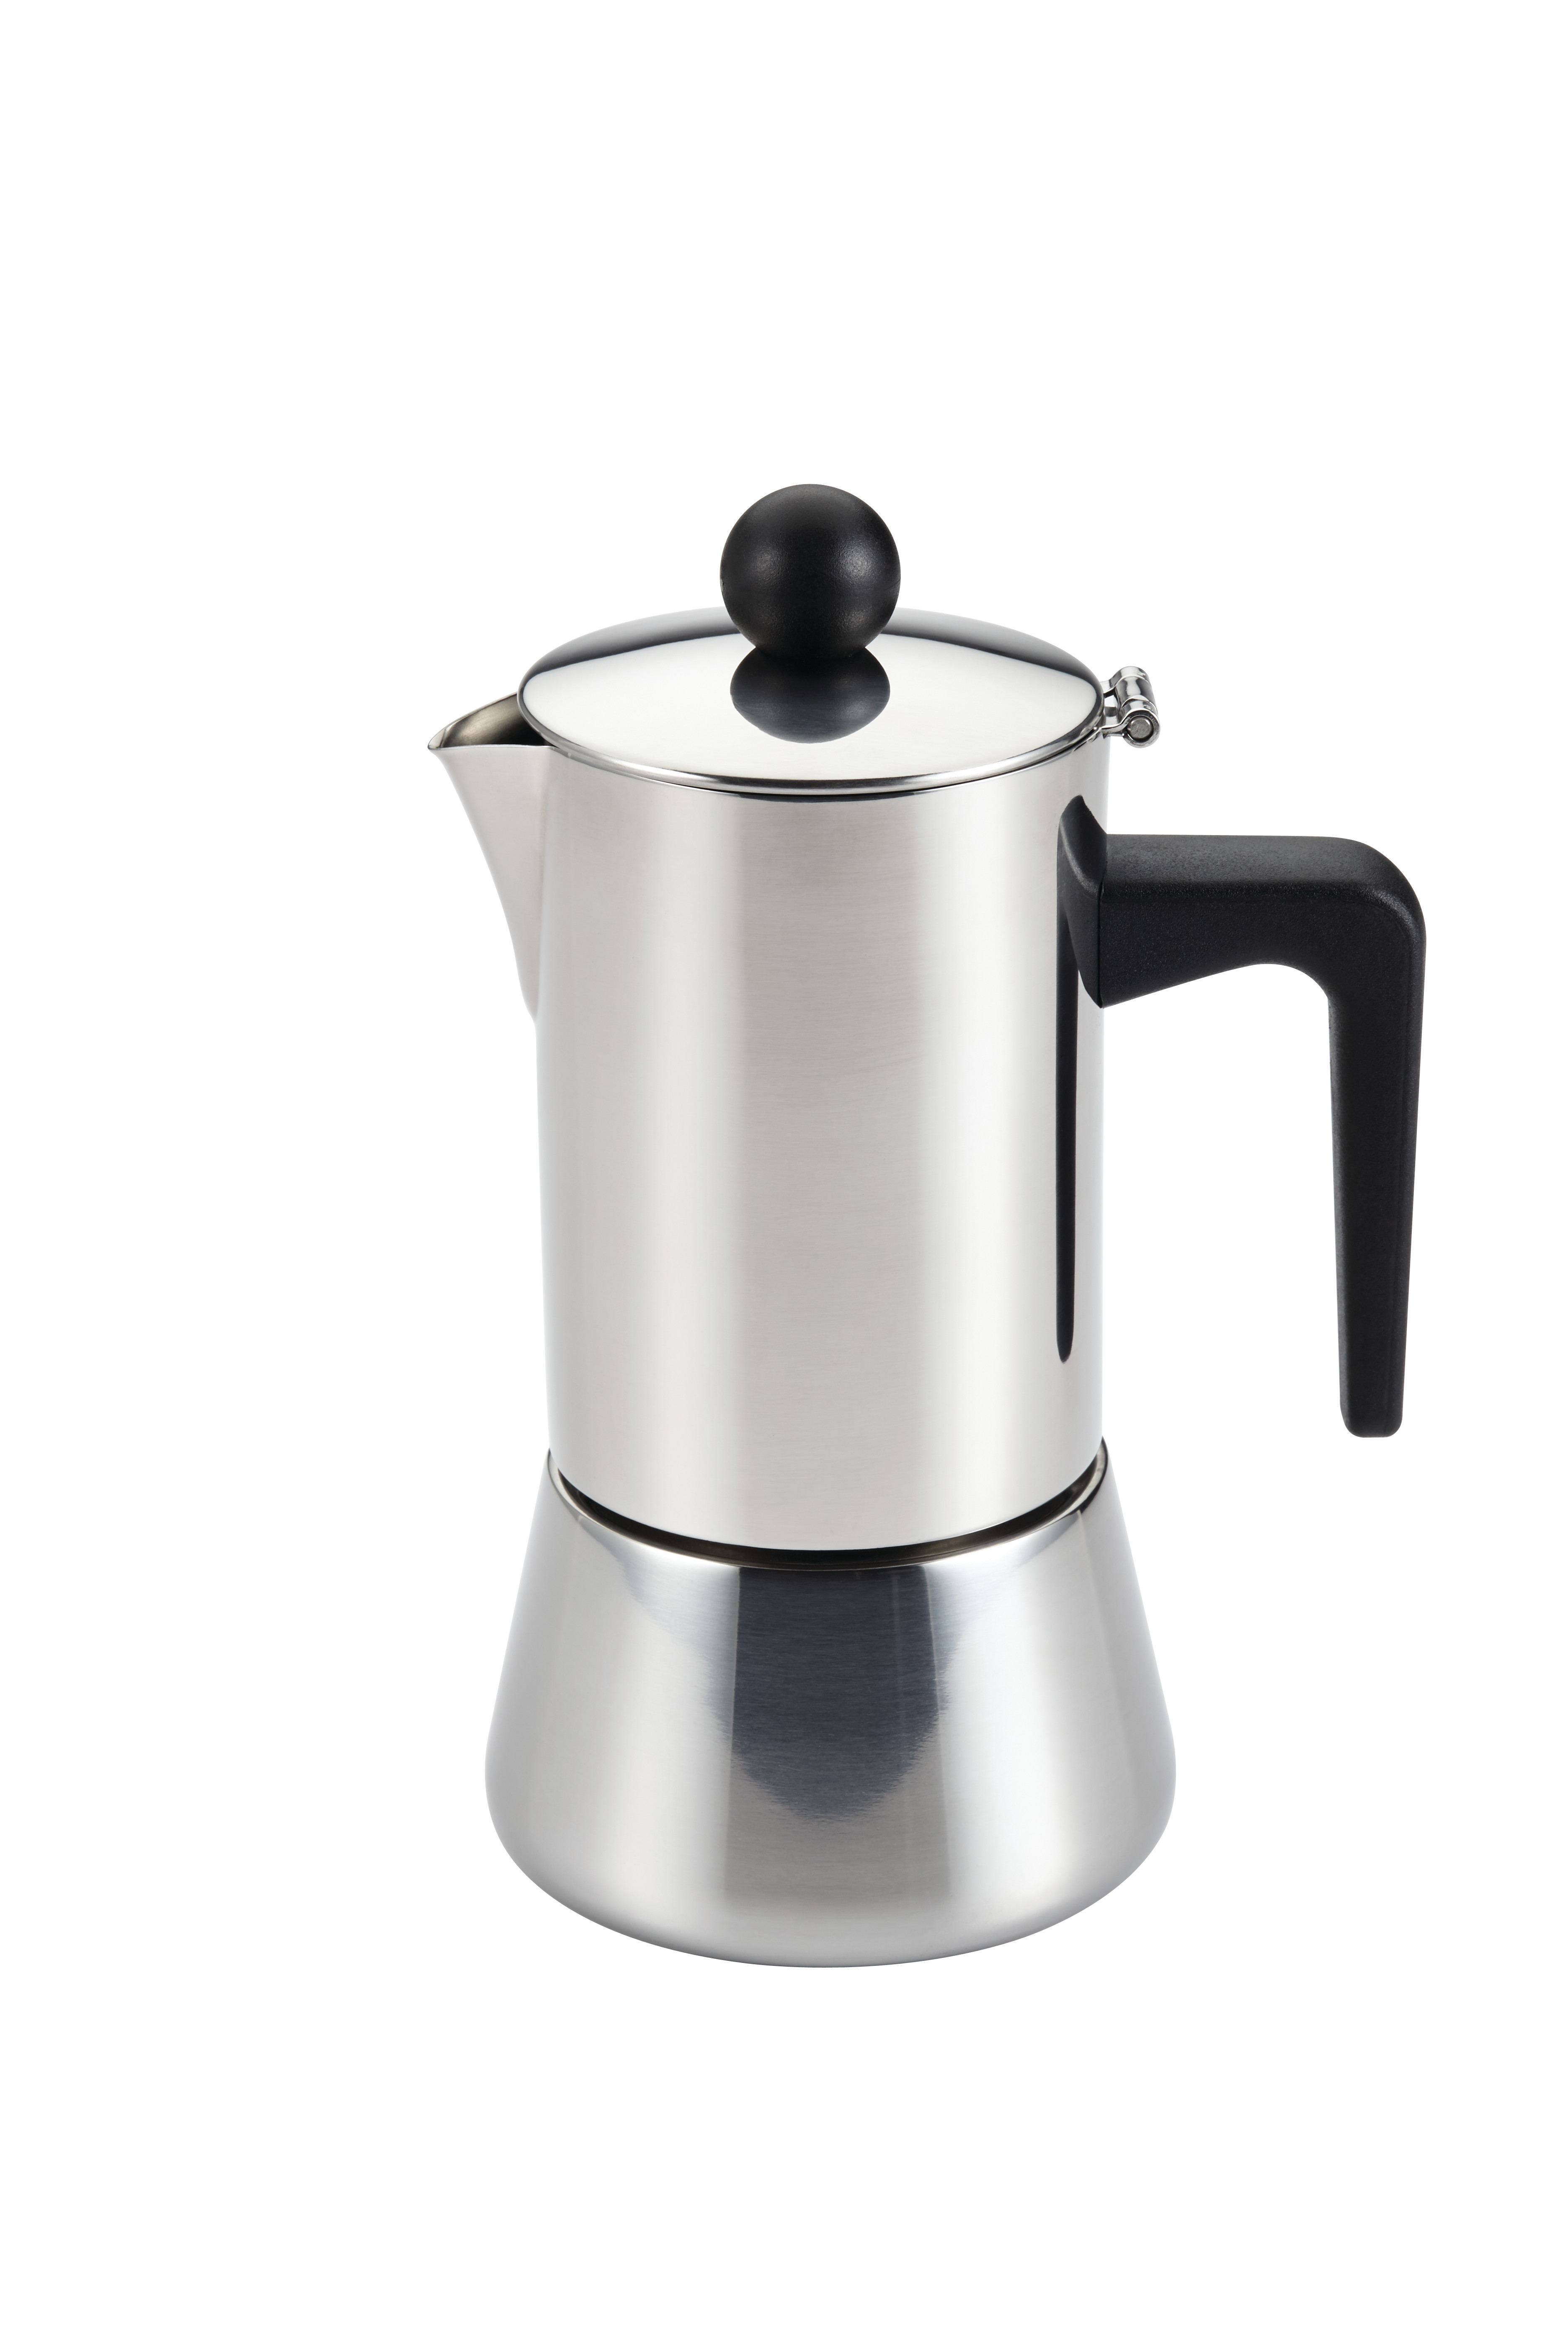 Stainless steel stovetop espresso maker 10 cup - Bonjour R Coffee Stainless Steel Stovetop Espresso Maker 32 Ounce Walmart Com